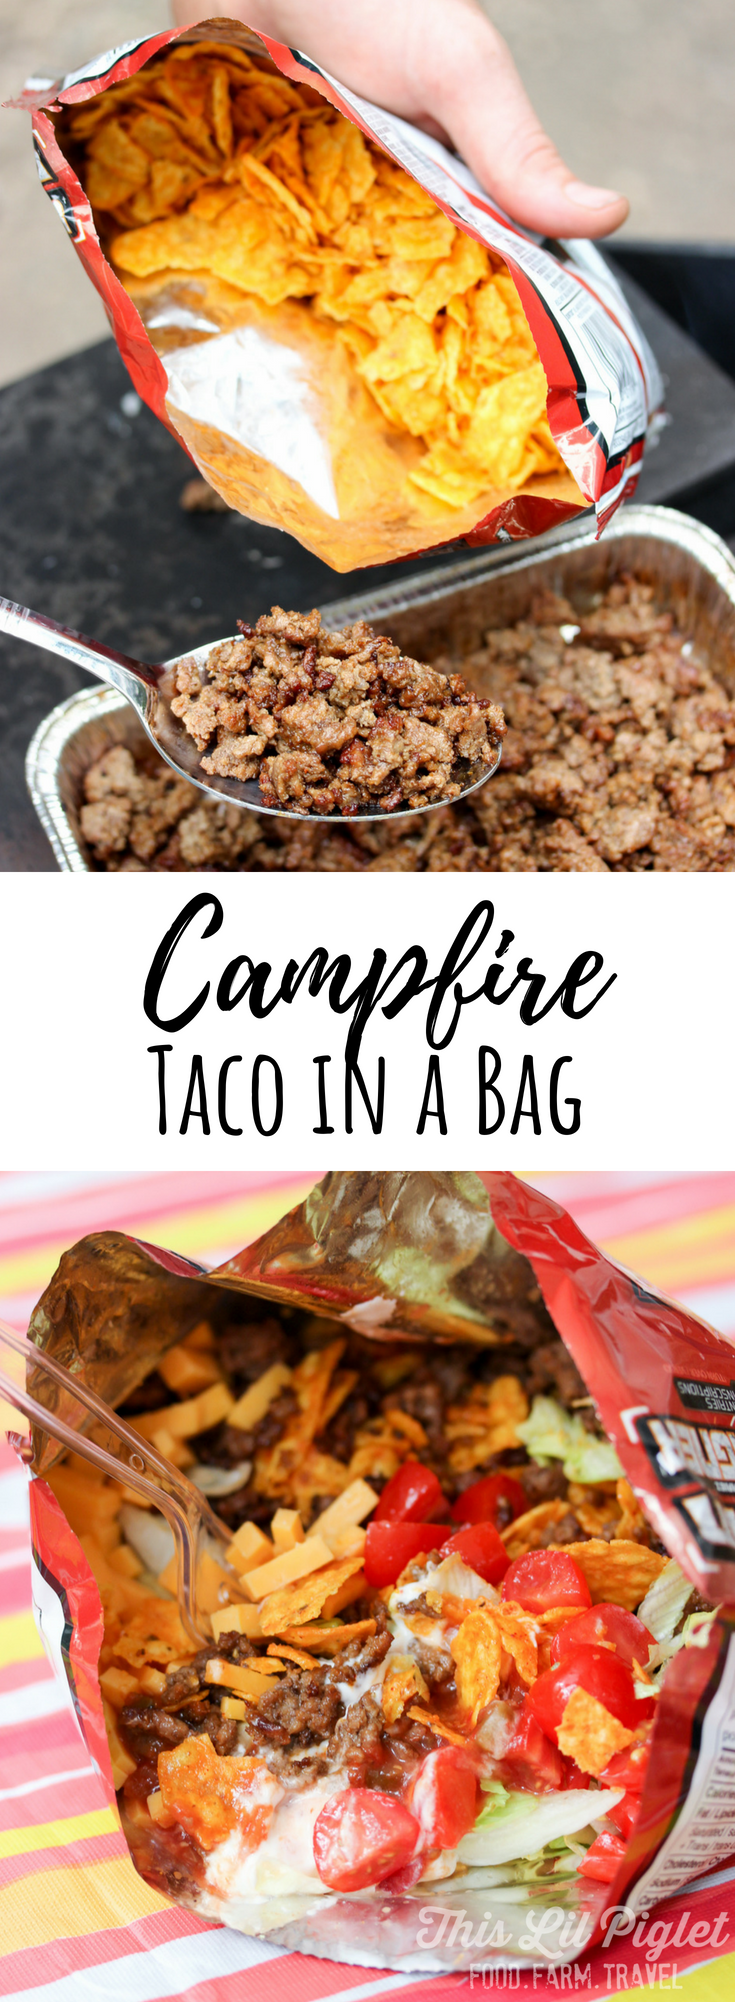 Camping Food: Campfire Taco in a Bag - This Lil Piglet